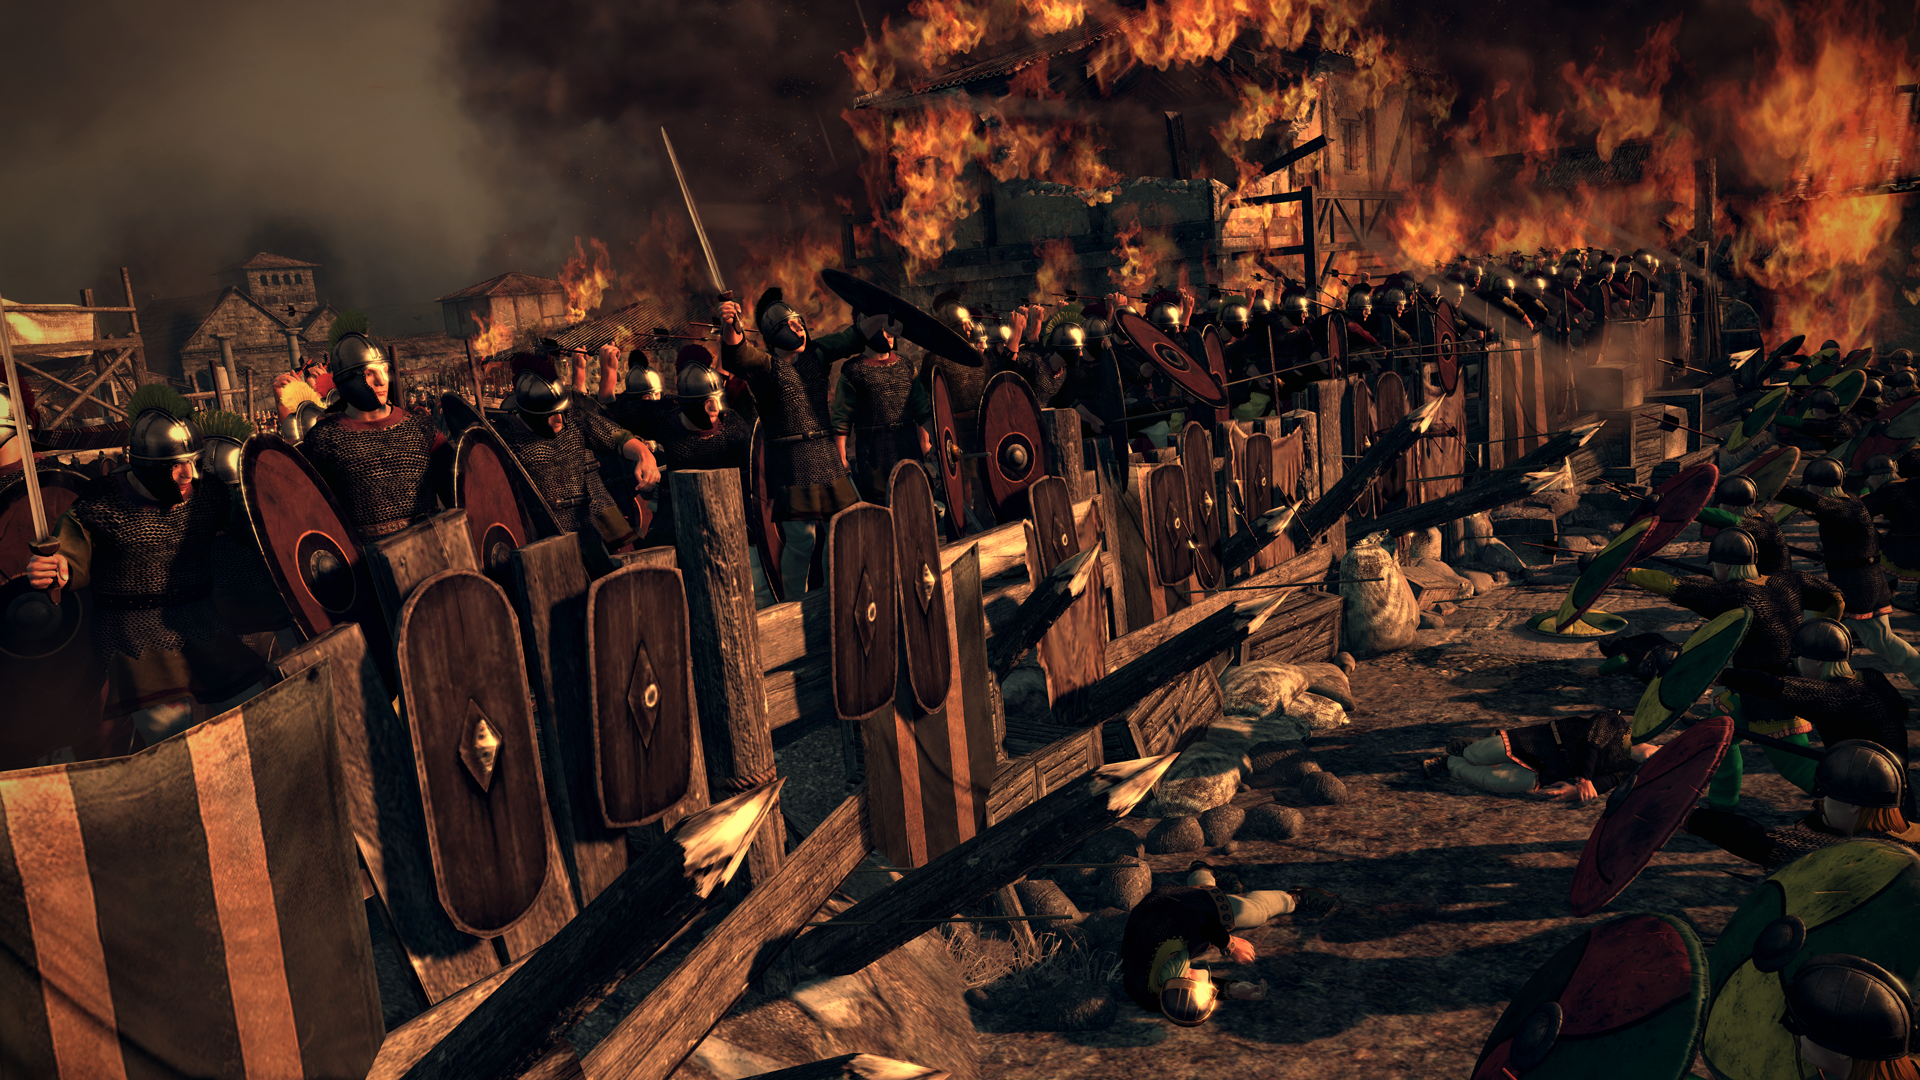 total war attila full hd fond d233cran and arri232replan